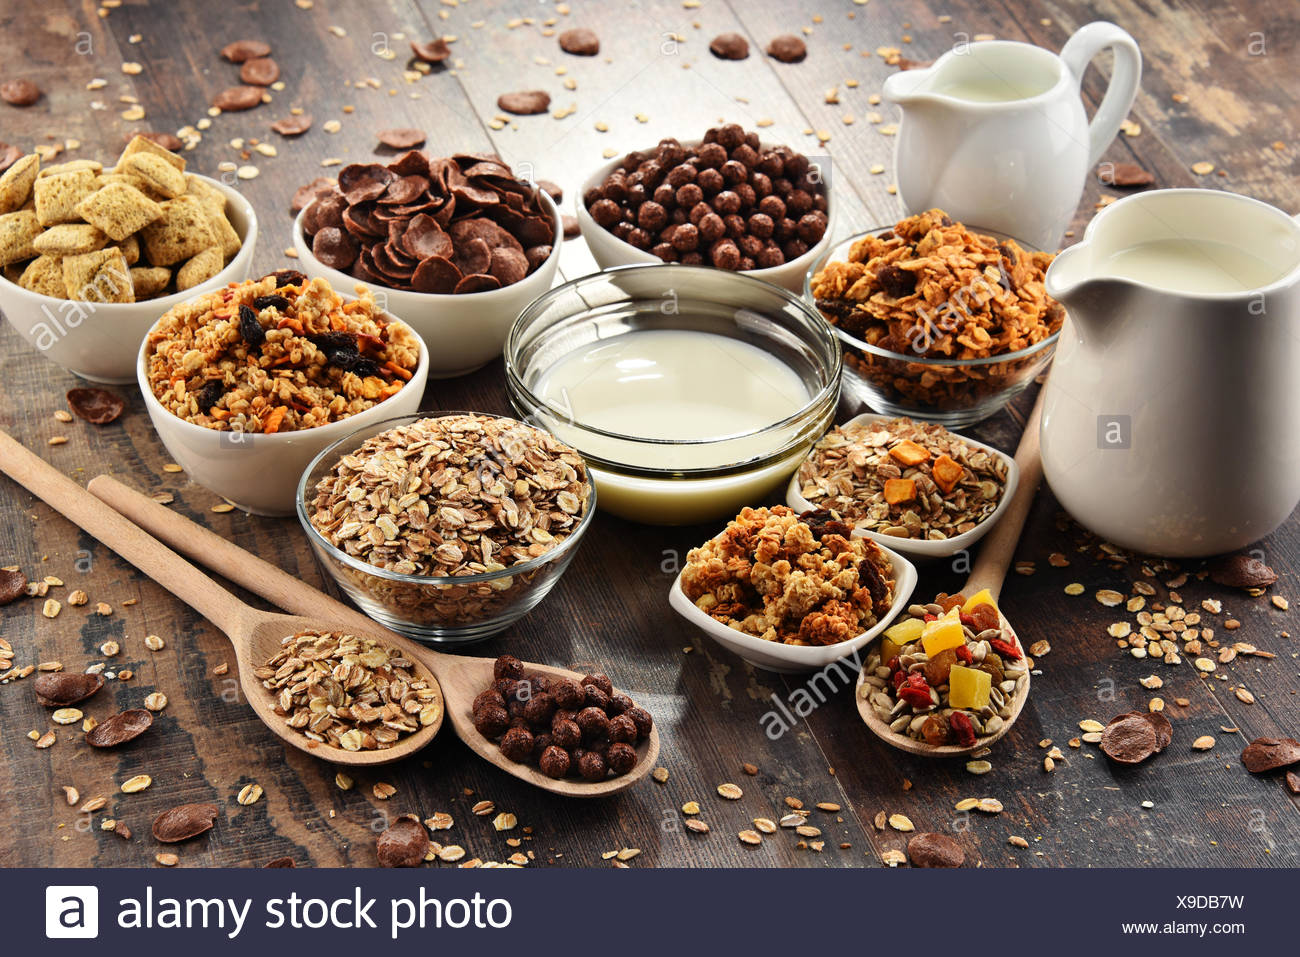 Composition with different sorts of breakfast cereal products - Stock Image